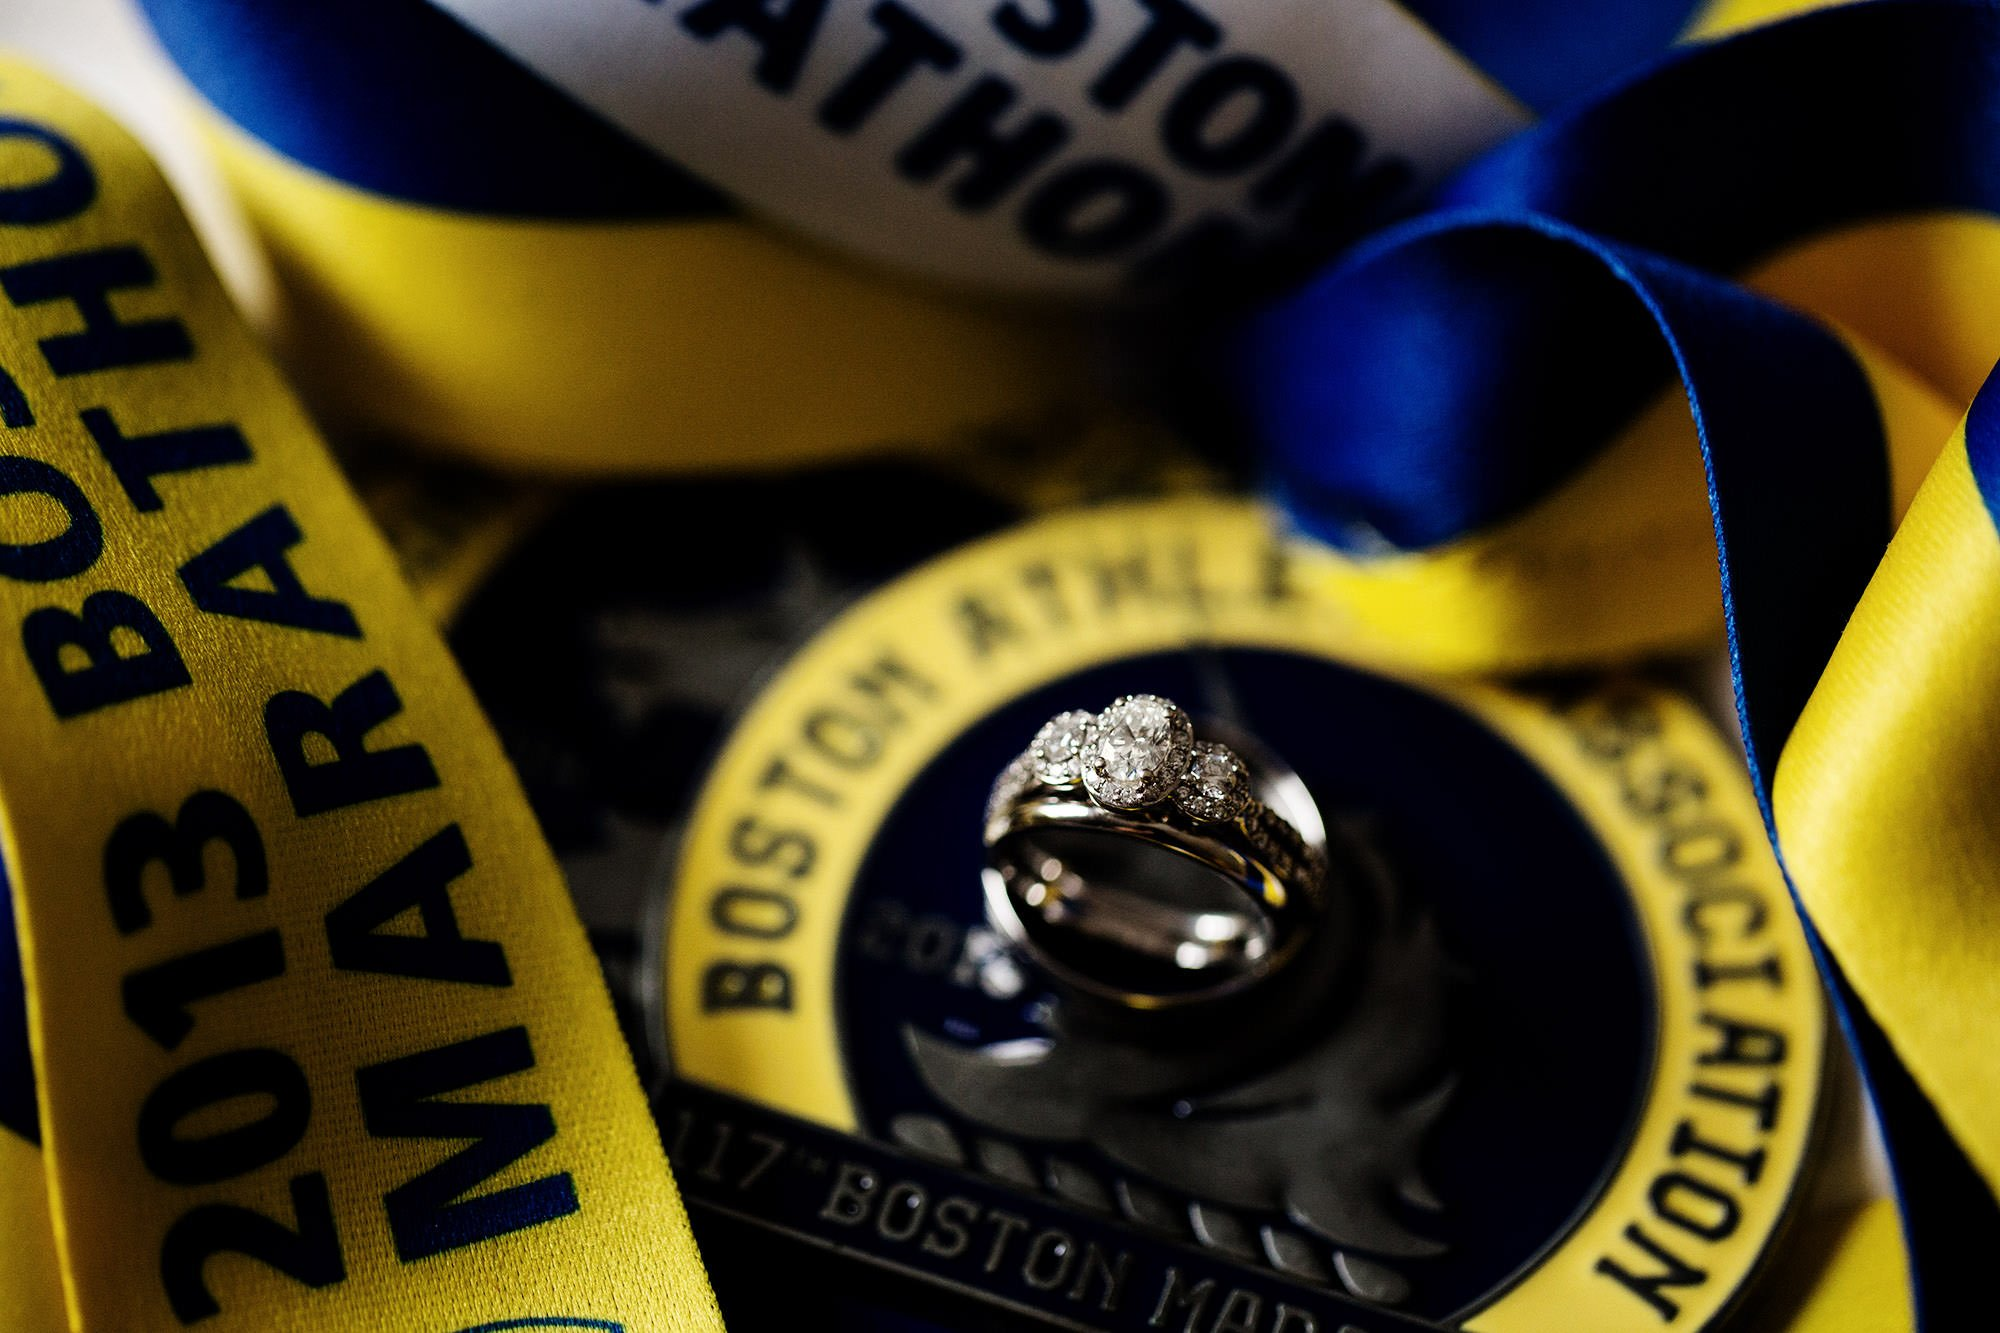 A ring detail next to Boston Marathon medals.